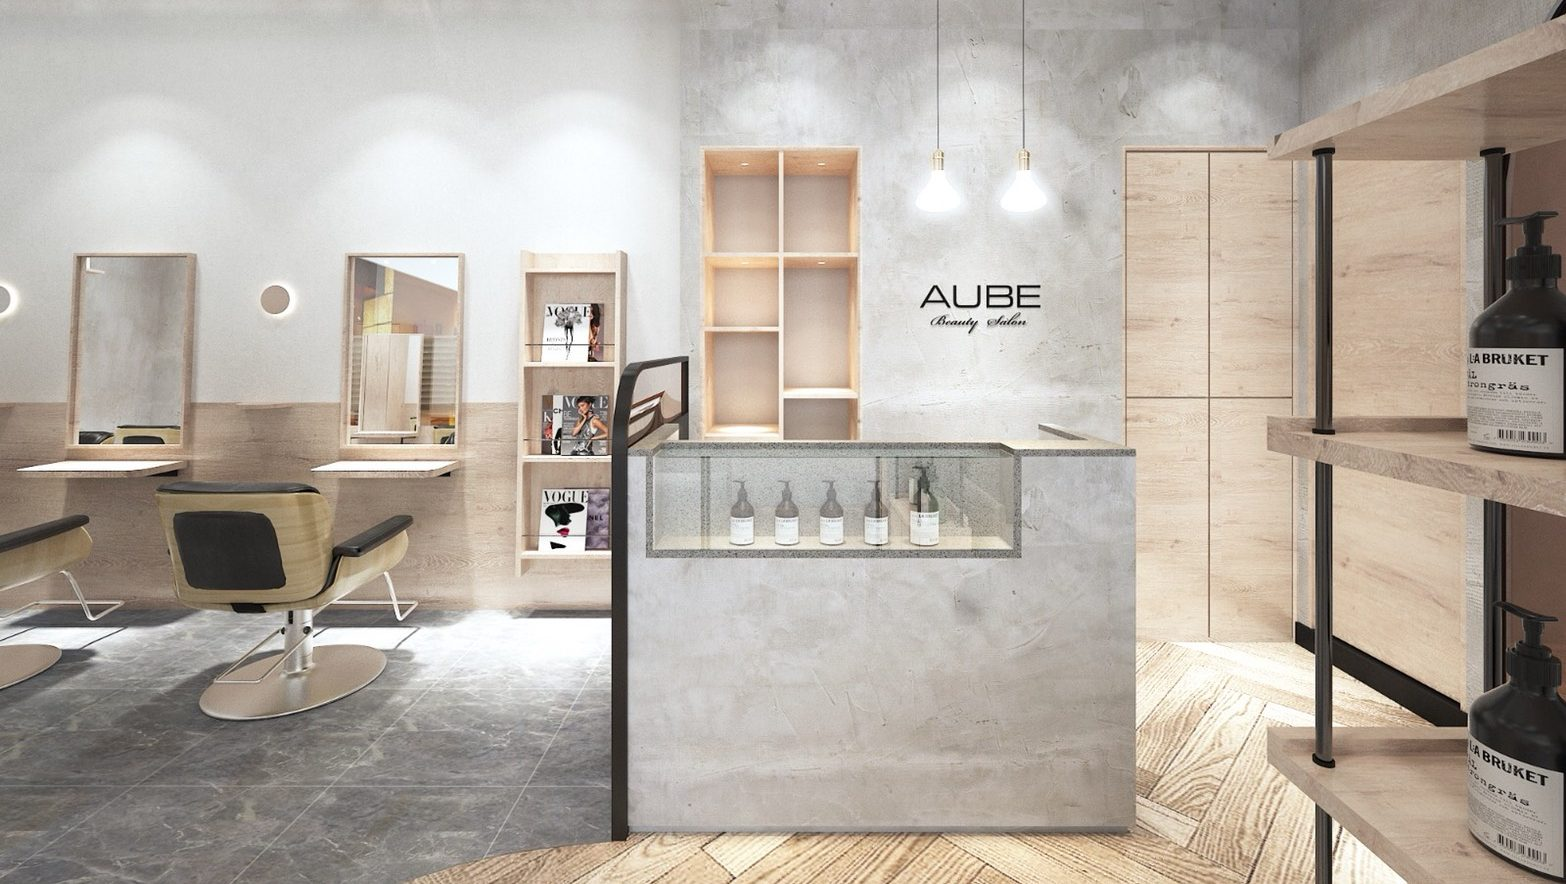 AUBE Beauty Salon